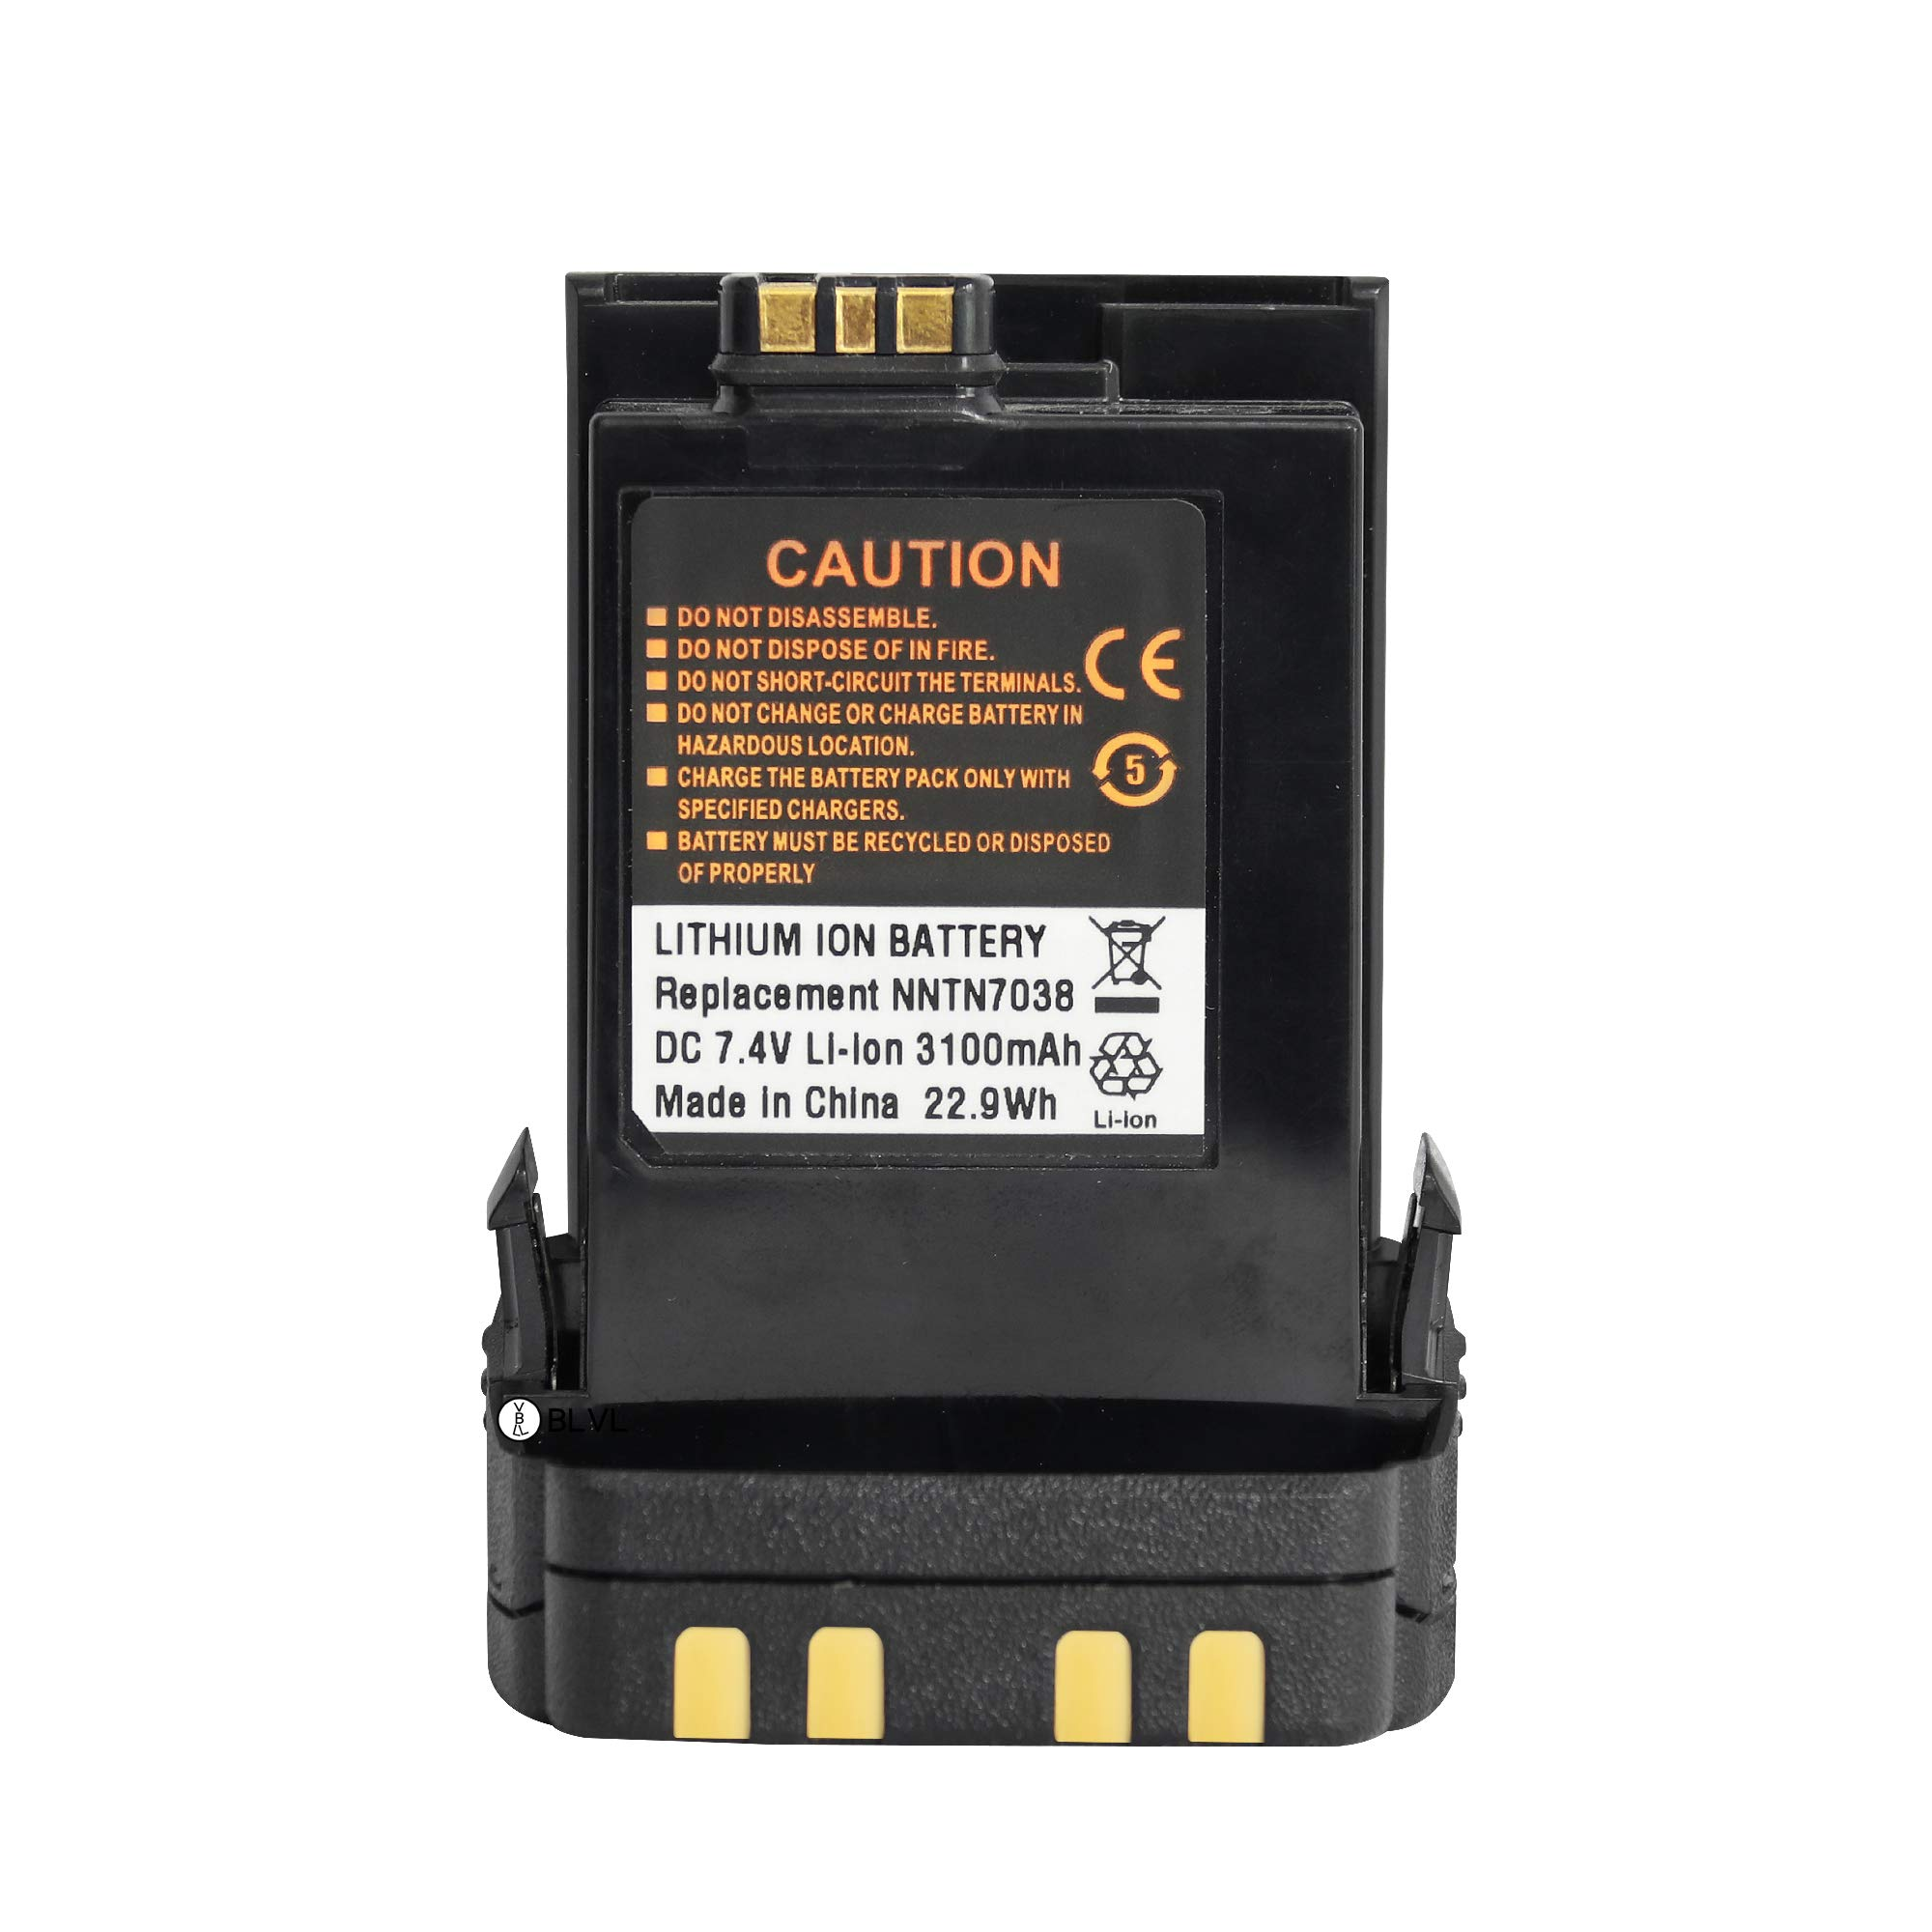 BLVL NNTN7038 3100 mAh Li-ion Replacement Battery for Motorola APX7000 APX6000 APX8000 and SRX2200 Radio by BLVL